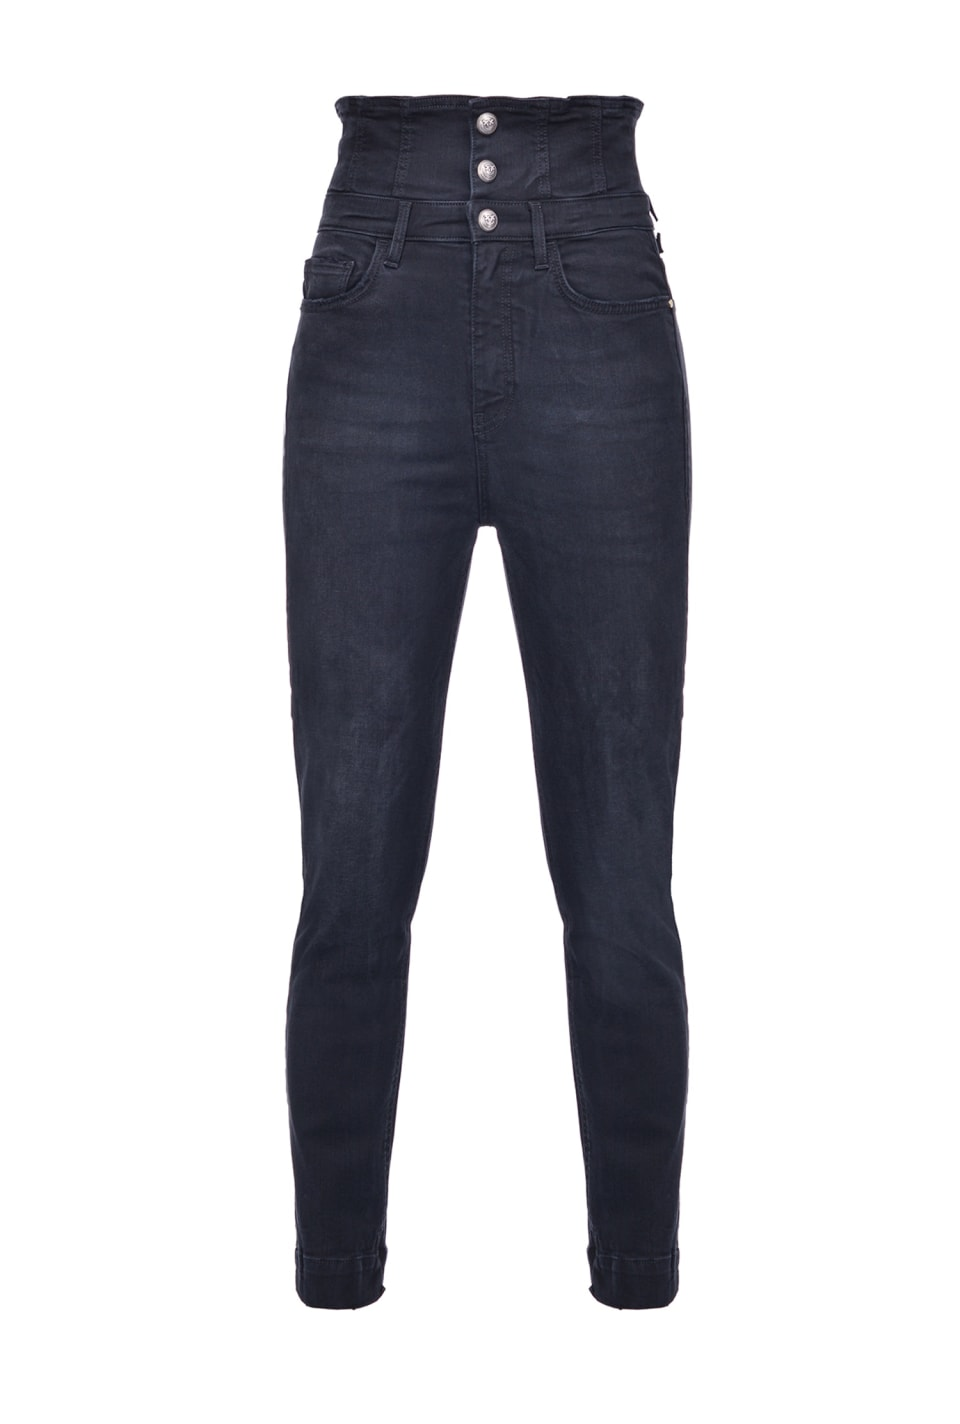 Schwarze Super-High-Waist-Jeans im Skinny-Fit aus Power-Stretch-Denim - Pinko